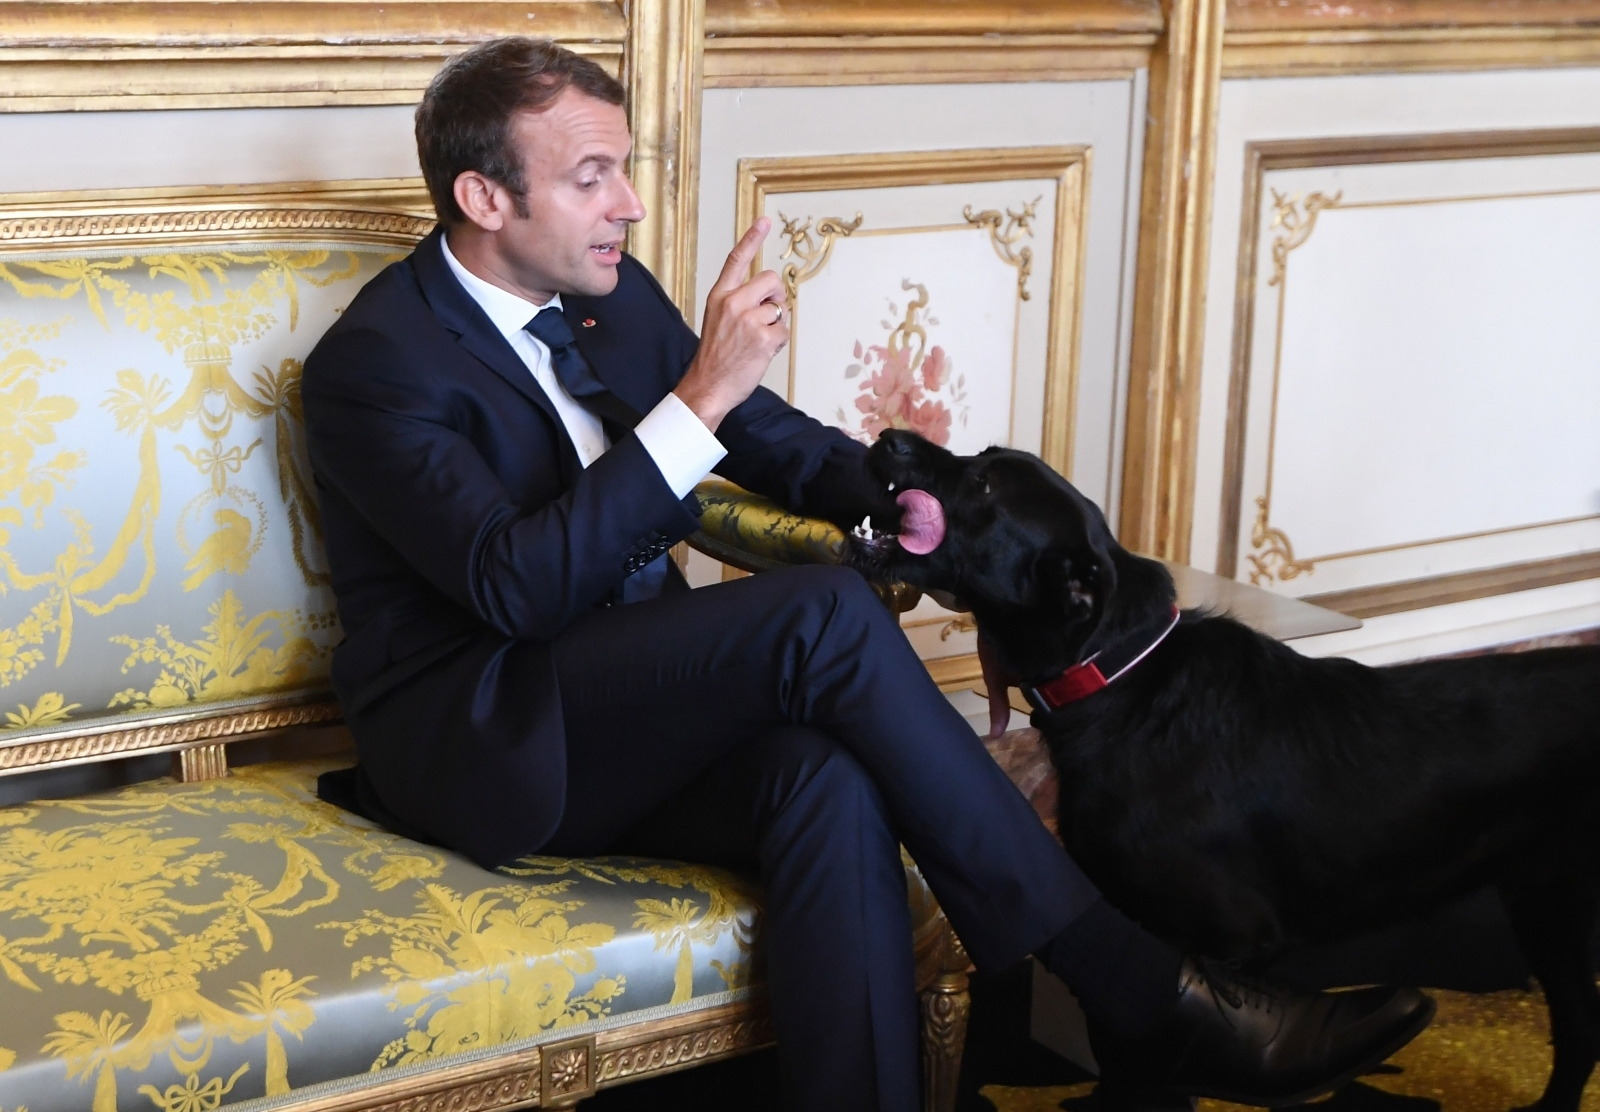 French president's dog's bathroom break during televised meeting